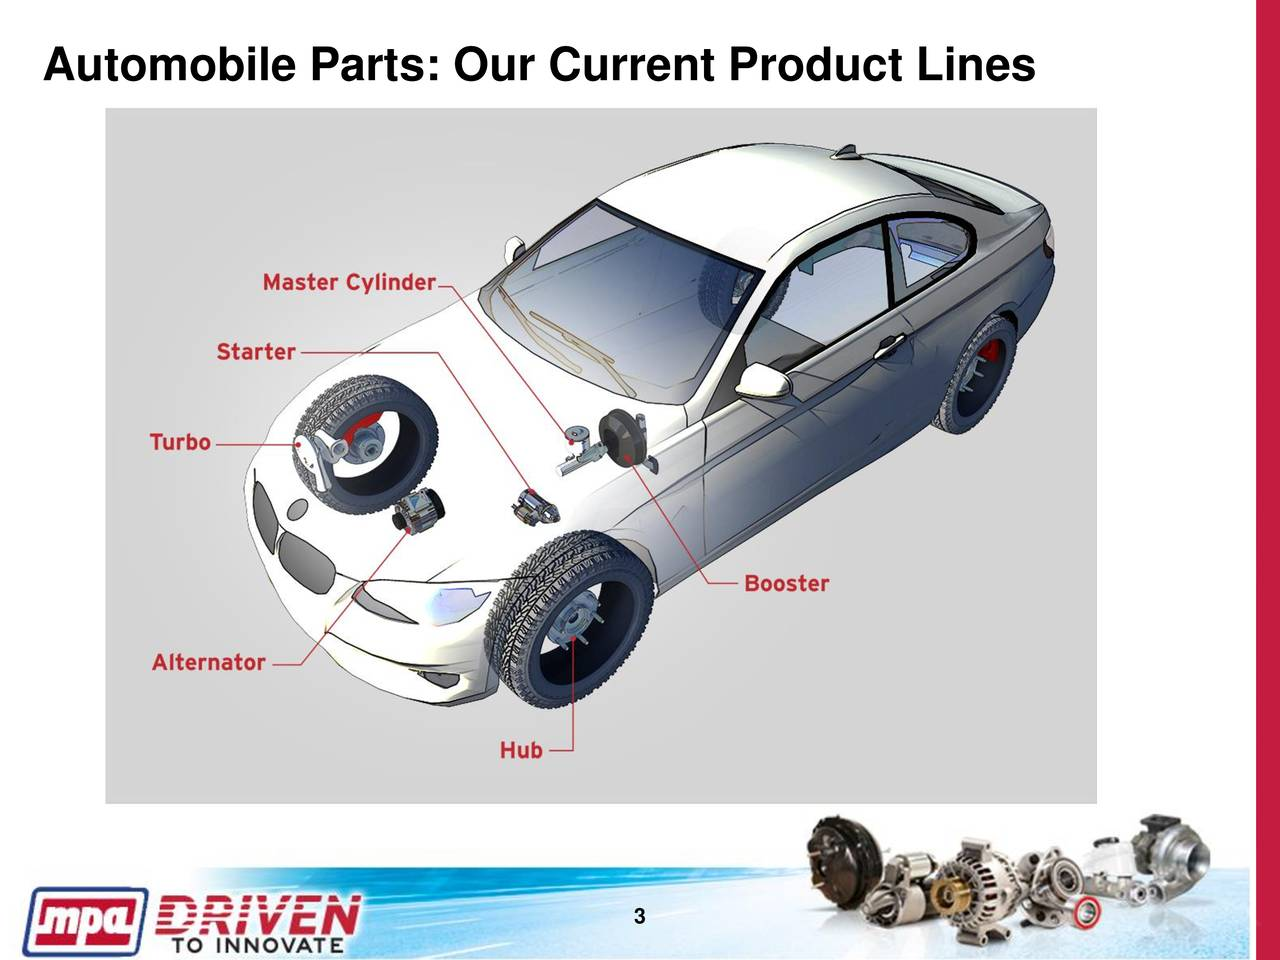 Motorcar Parts Of America Inc 2017 Q3 Results Earnings Call